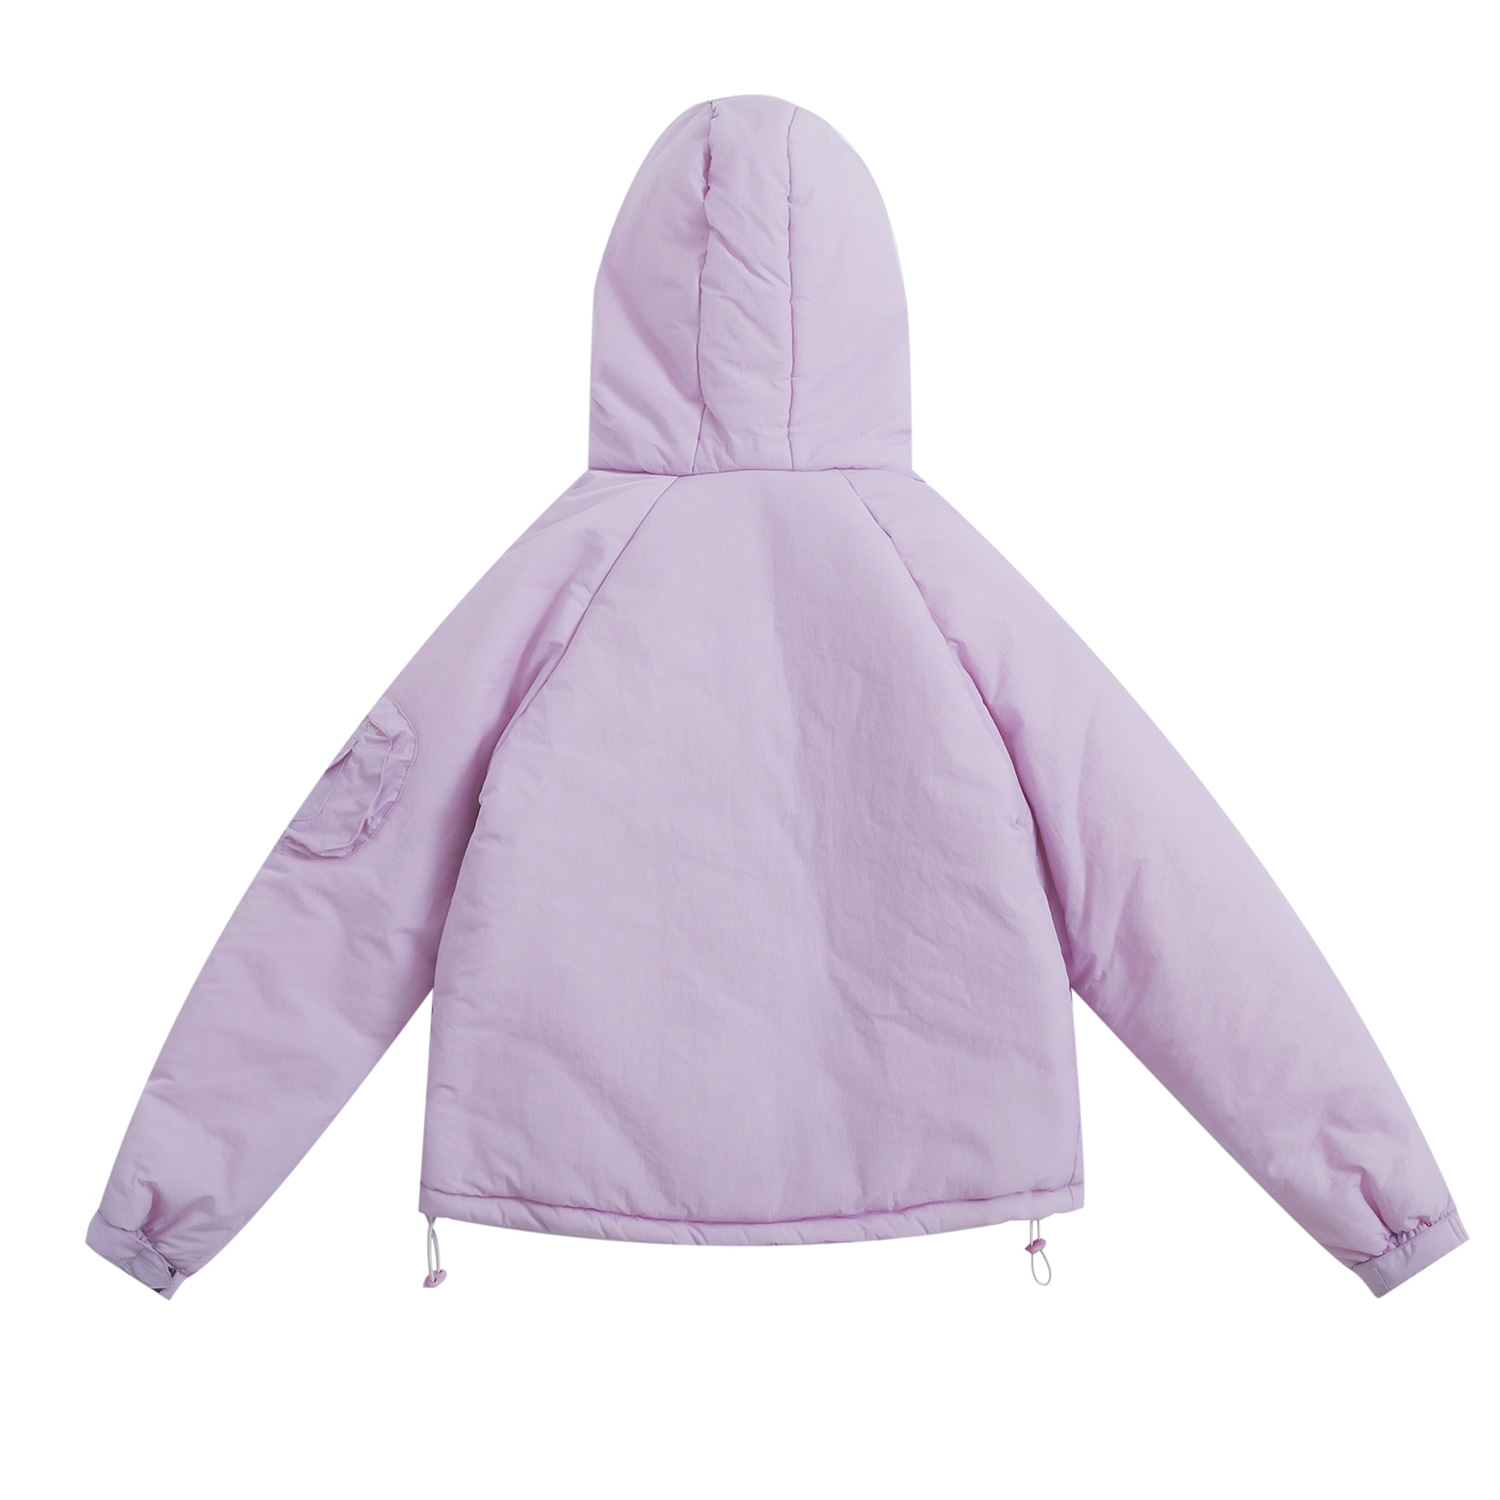 À Vestes Lapin Preppy De Col Femmes Cravate D'hiver Pink Style Purple Doux Chaud Épais Dames Outwear Parkas Manteau Fourrure Fille Capuchon Manteaux Up 5qxSfwapwU